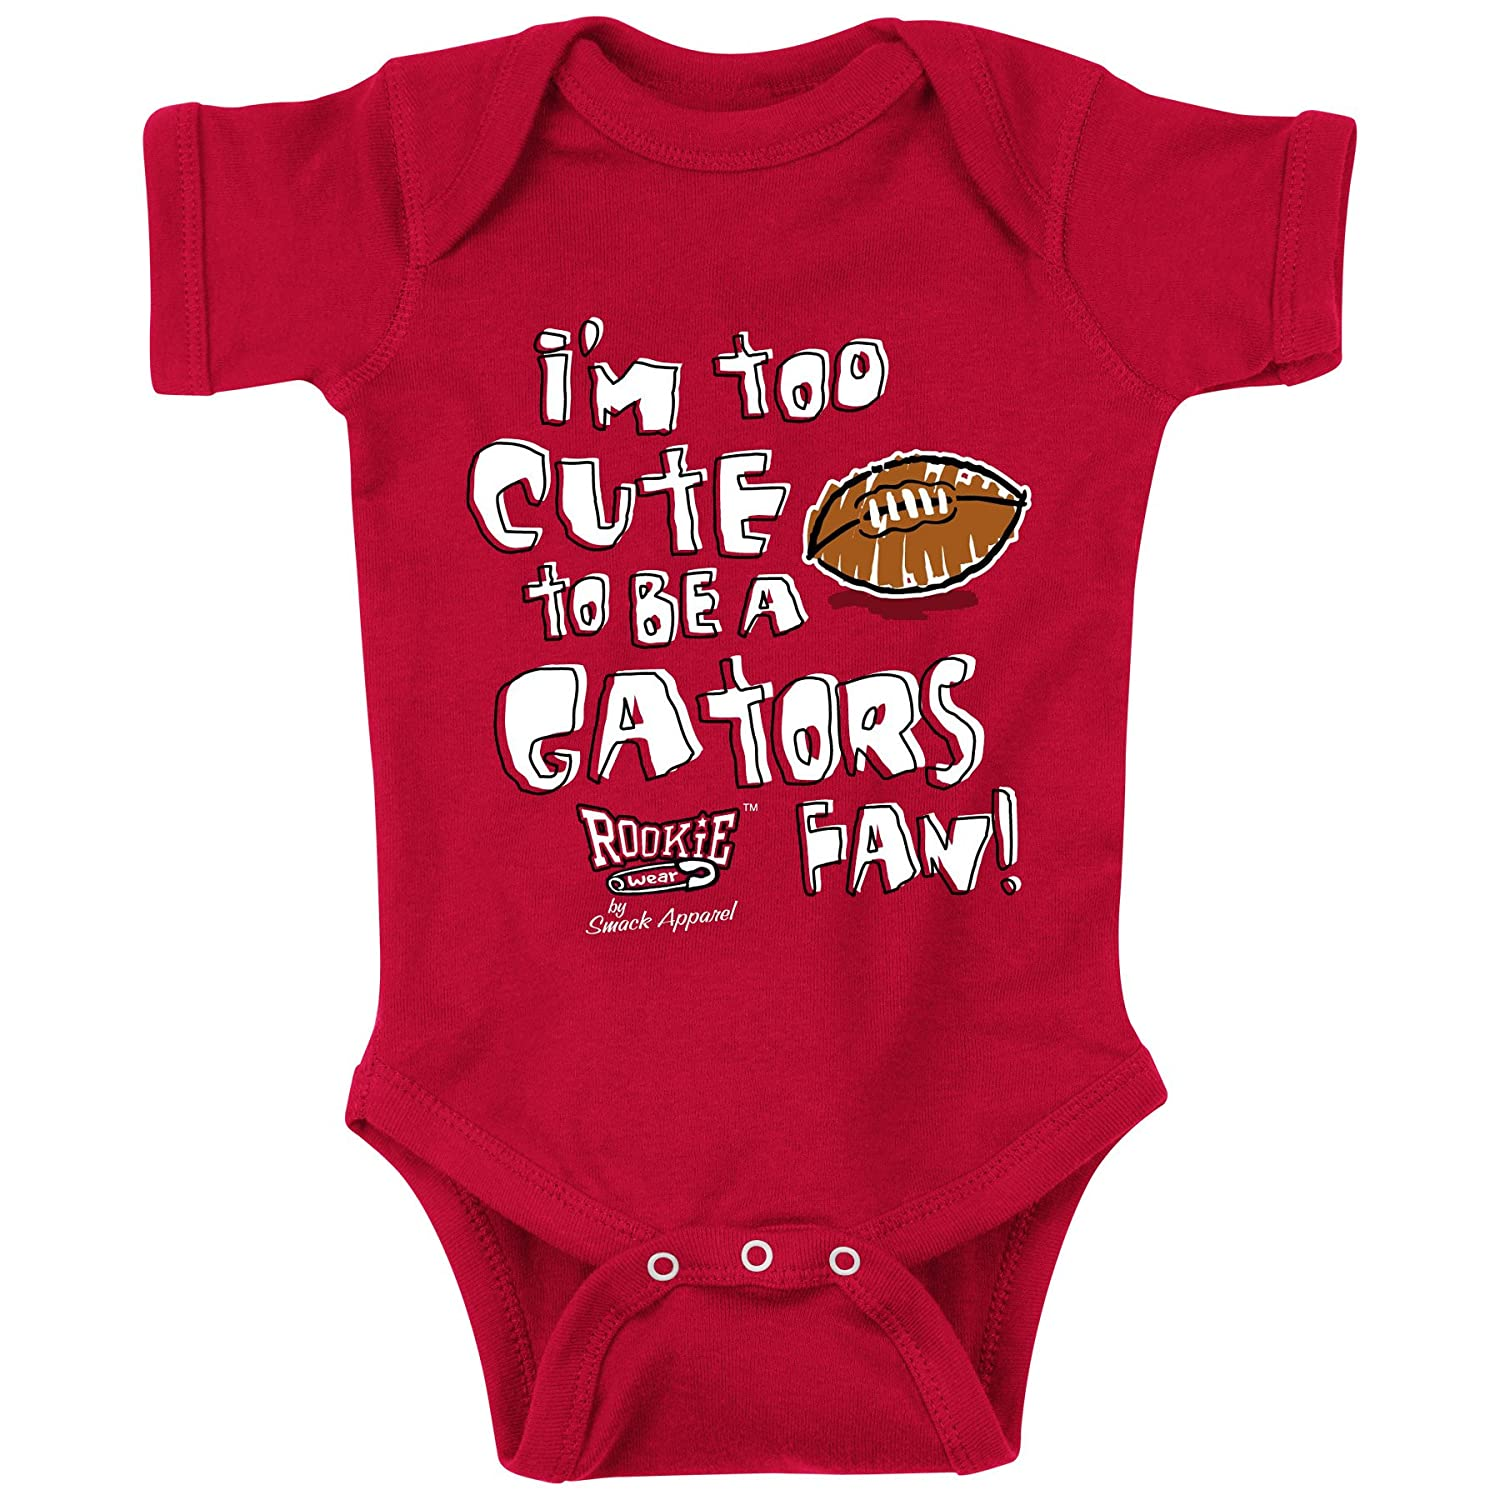 Rookie Wear by Smack Apparel Georgia Football Fans NB-18M or Toddler Tee Is it Just Me or do the Gators Stink!? Red Onesie 2T-3T